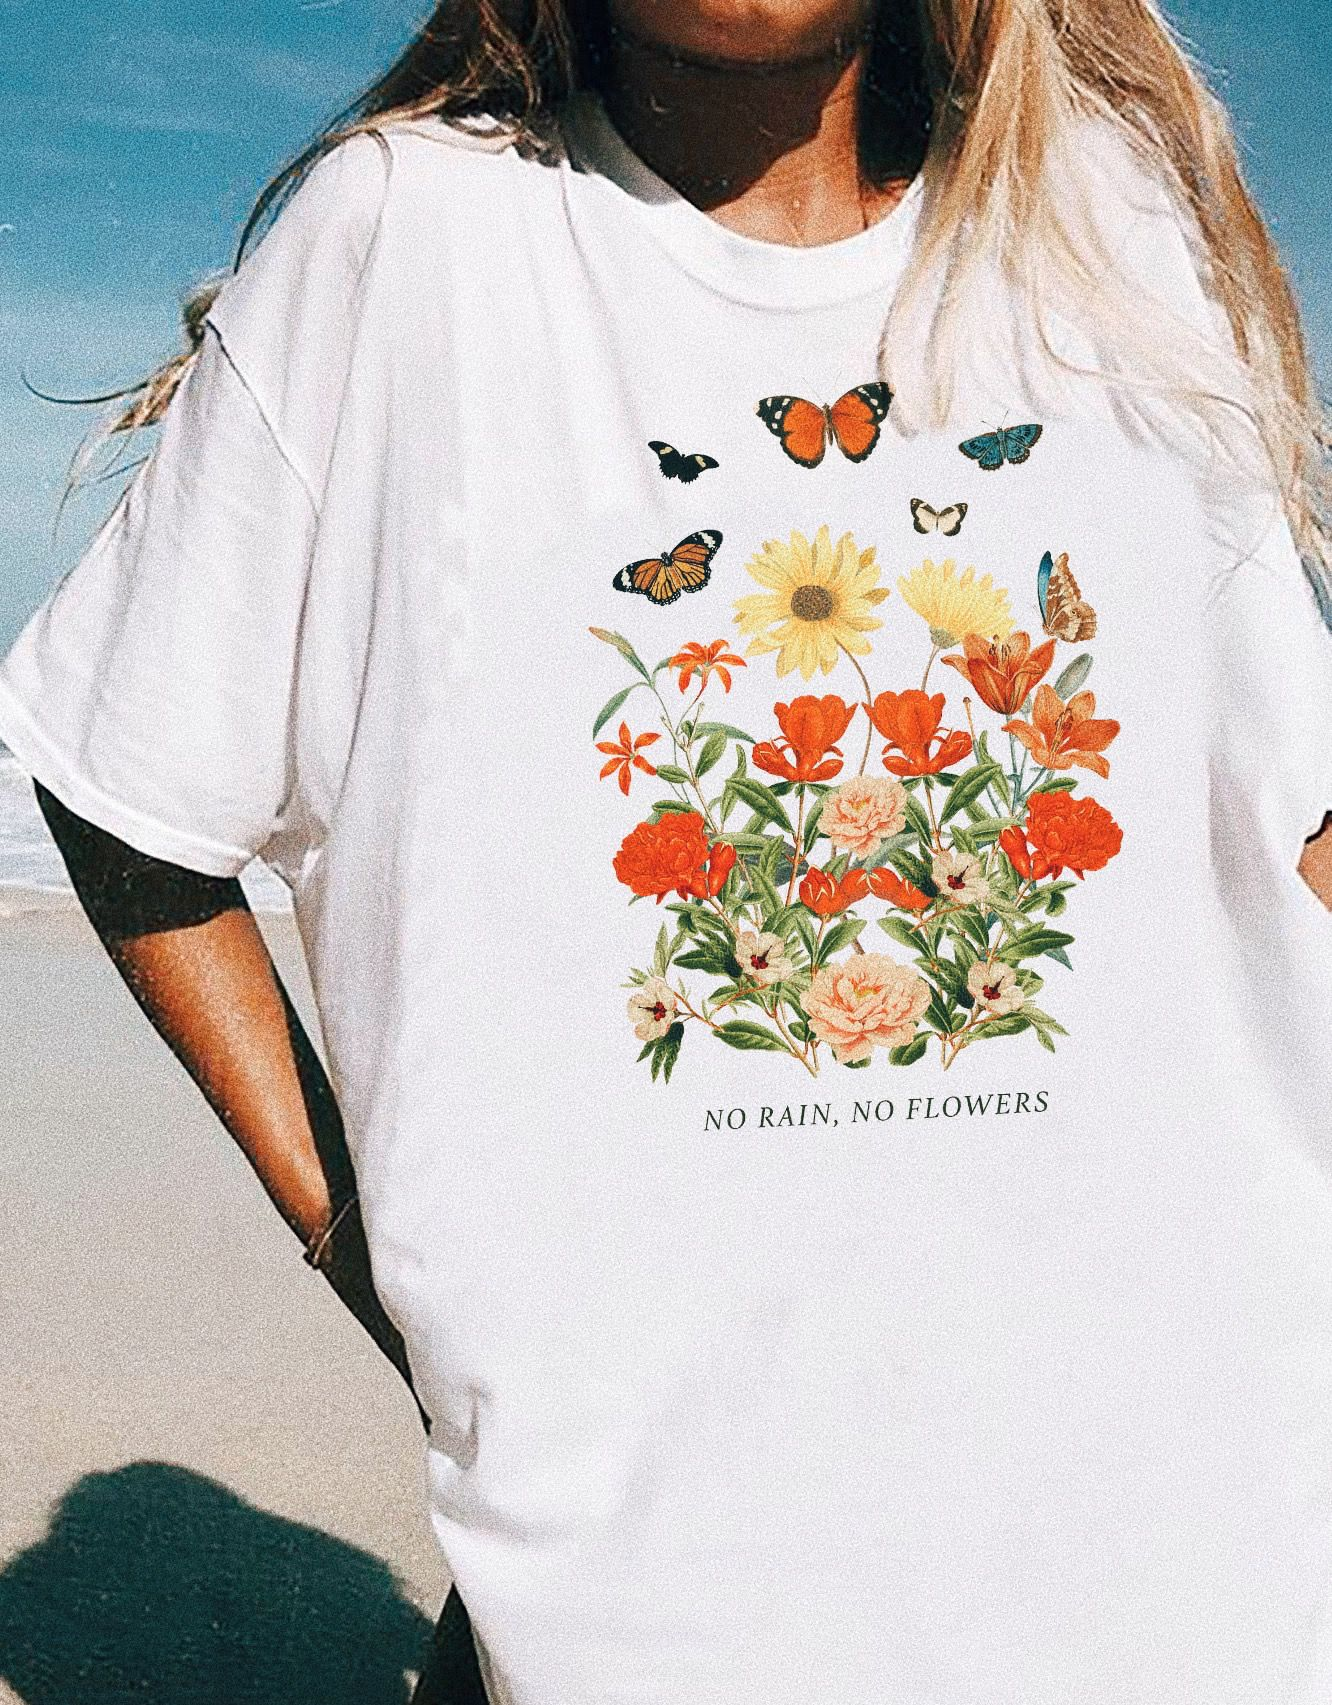 61cec866 No rain, no flowers vintage inspired graphic t-shirt featuring flowers and  butterfly graphics #graphictee #vintagetee